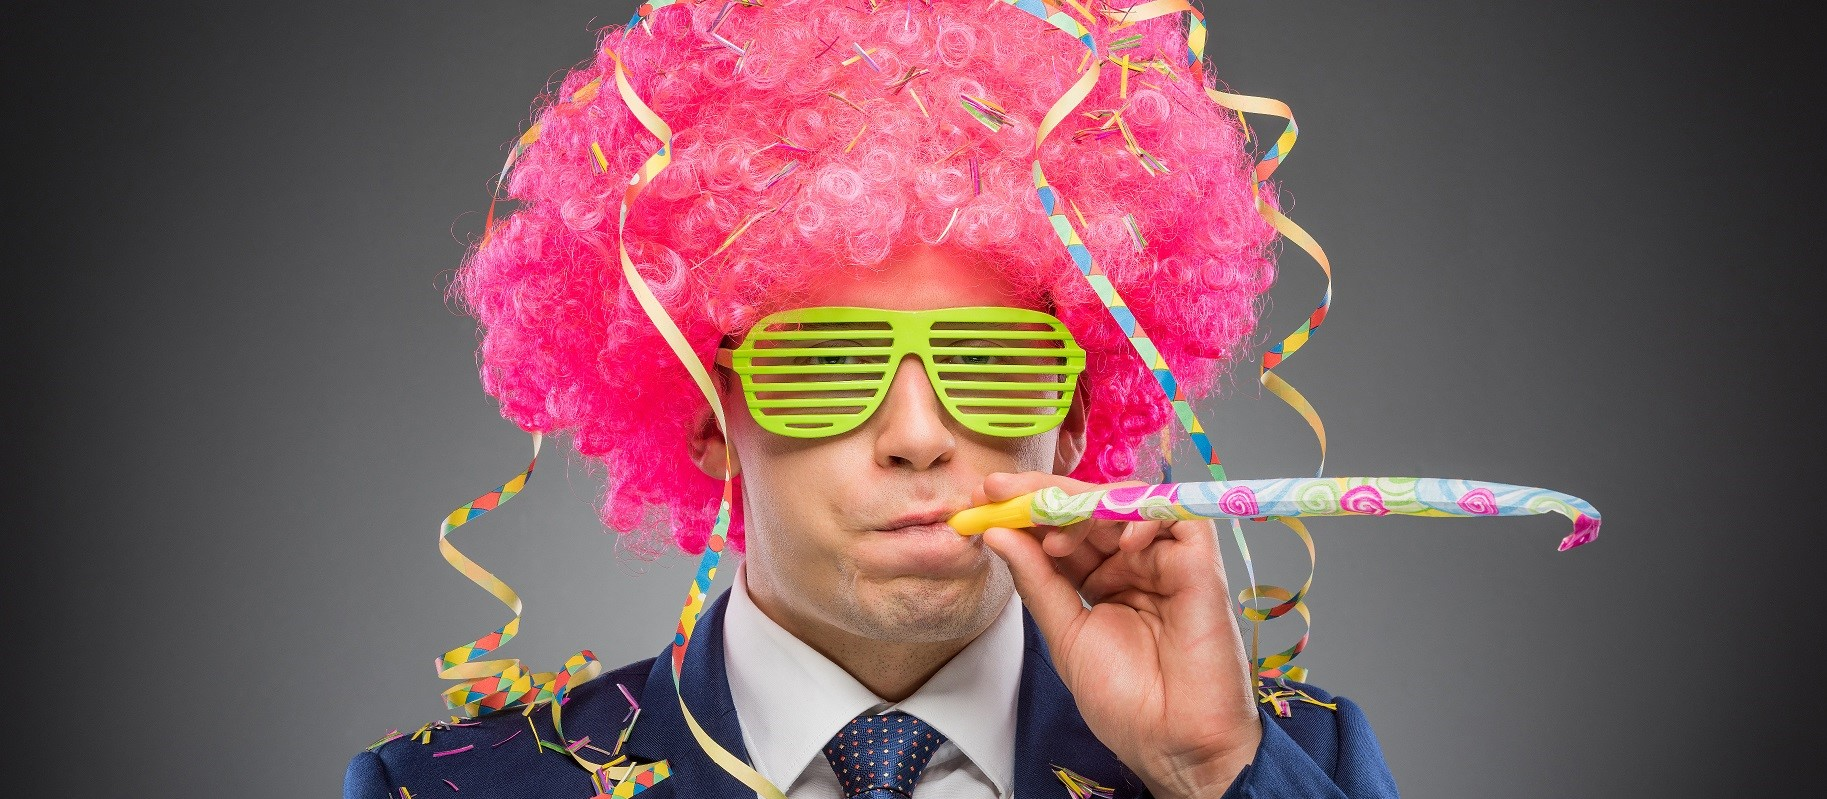 Pink business man in wig poses for photobooth picture